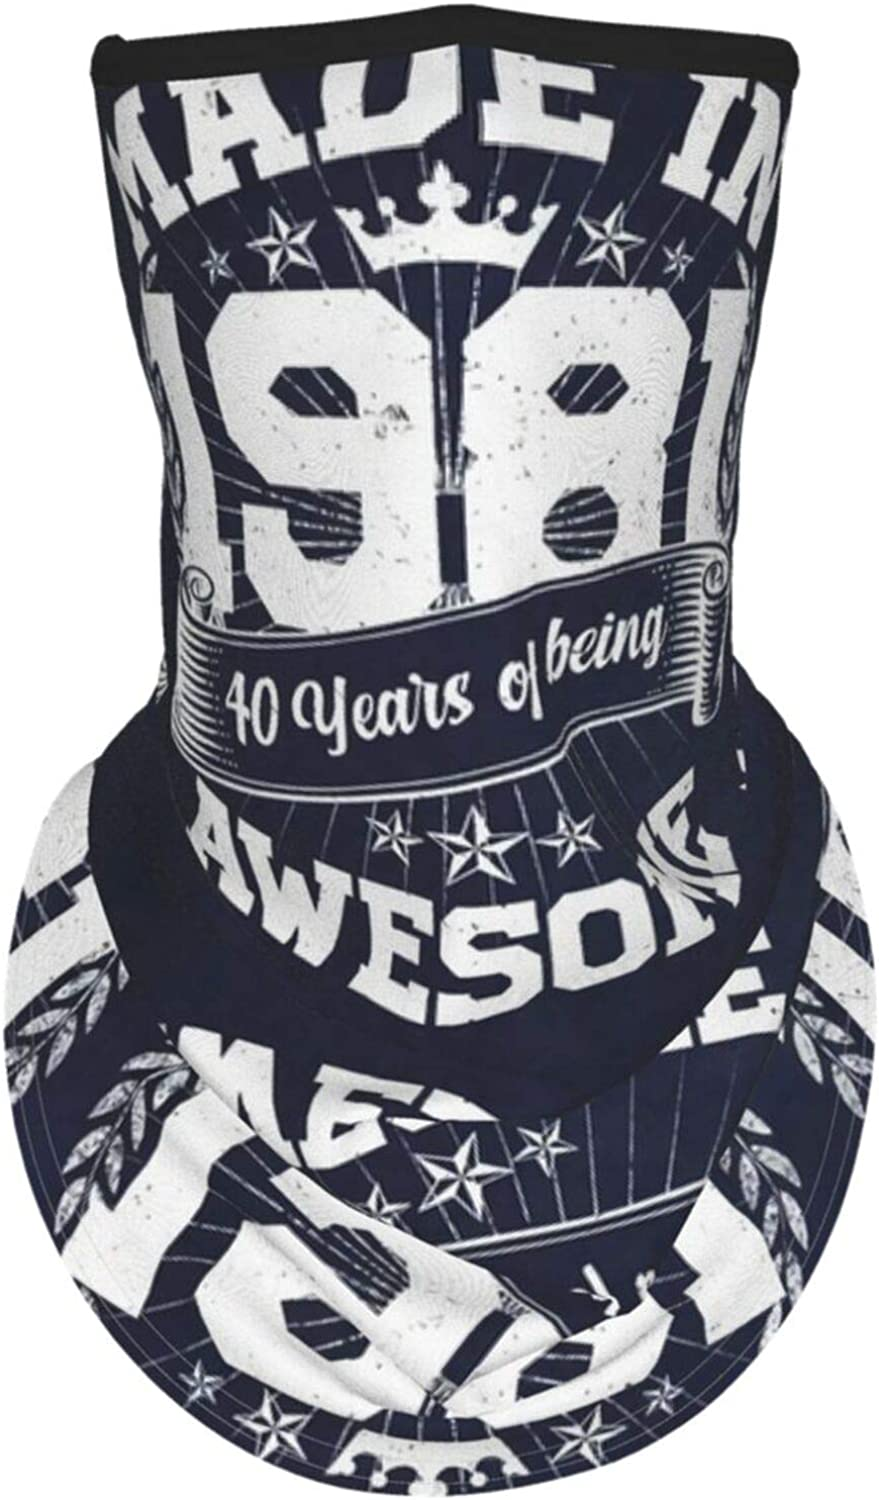 Ear Hangers Face Balaclava Made In 1981 Birthday 40 Years Of Being Awesome Navy Protective Cover Wristband Bandanas Neck Gaiter Dust-Proof,Anti-Pungent Gas,Washable